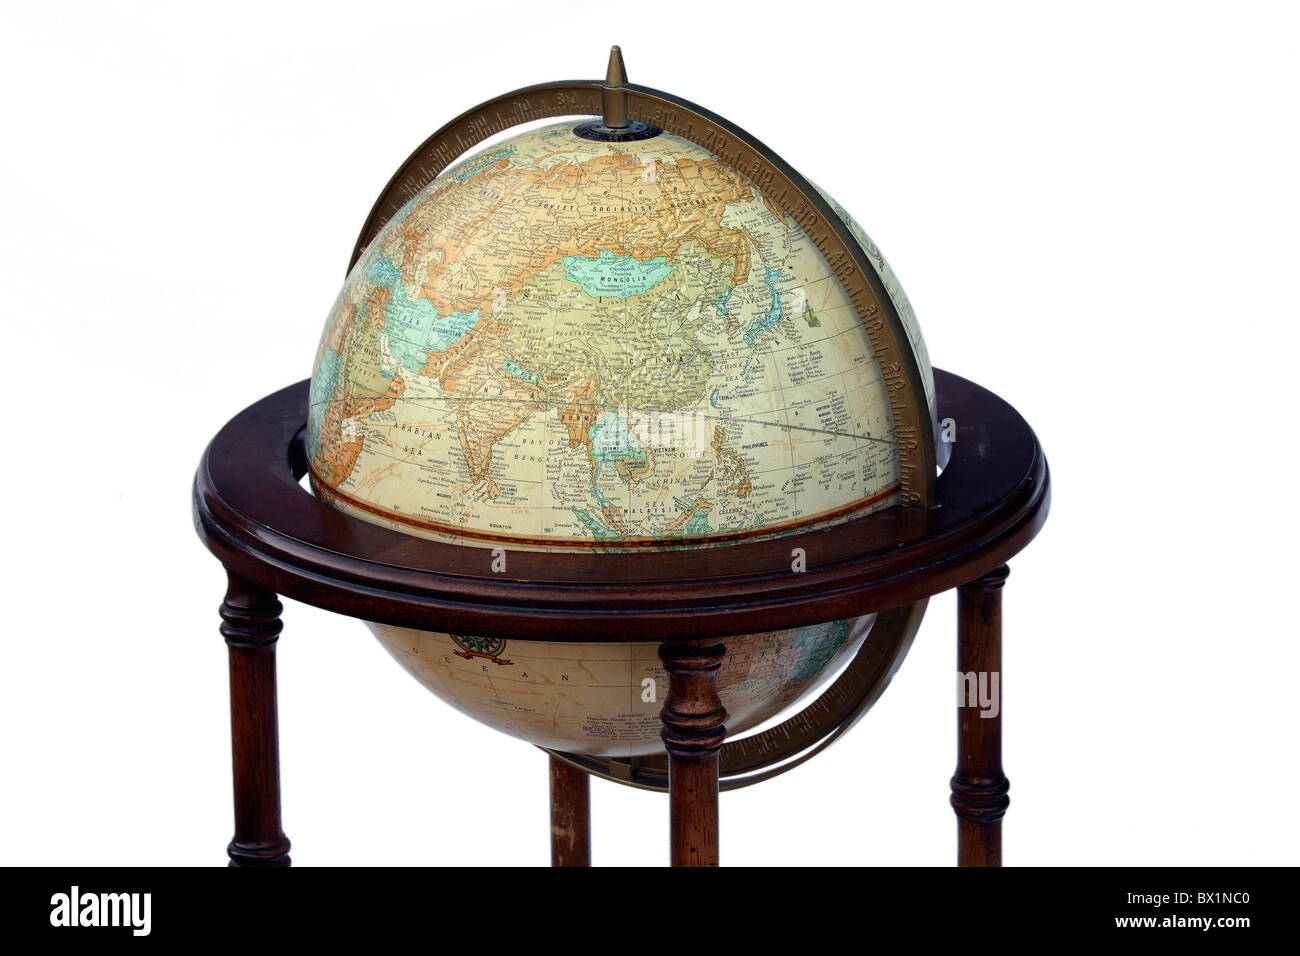 Globe globe map of world geography round countries coordinates - Stock Image